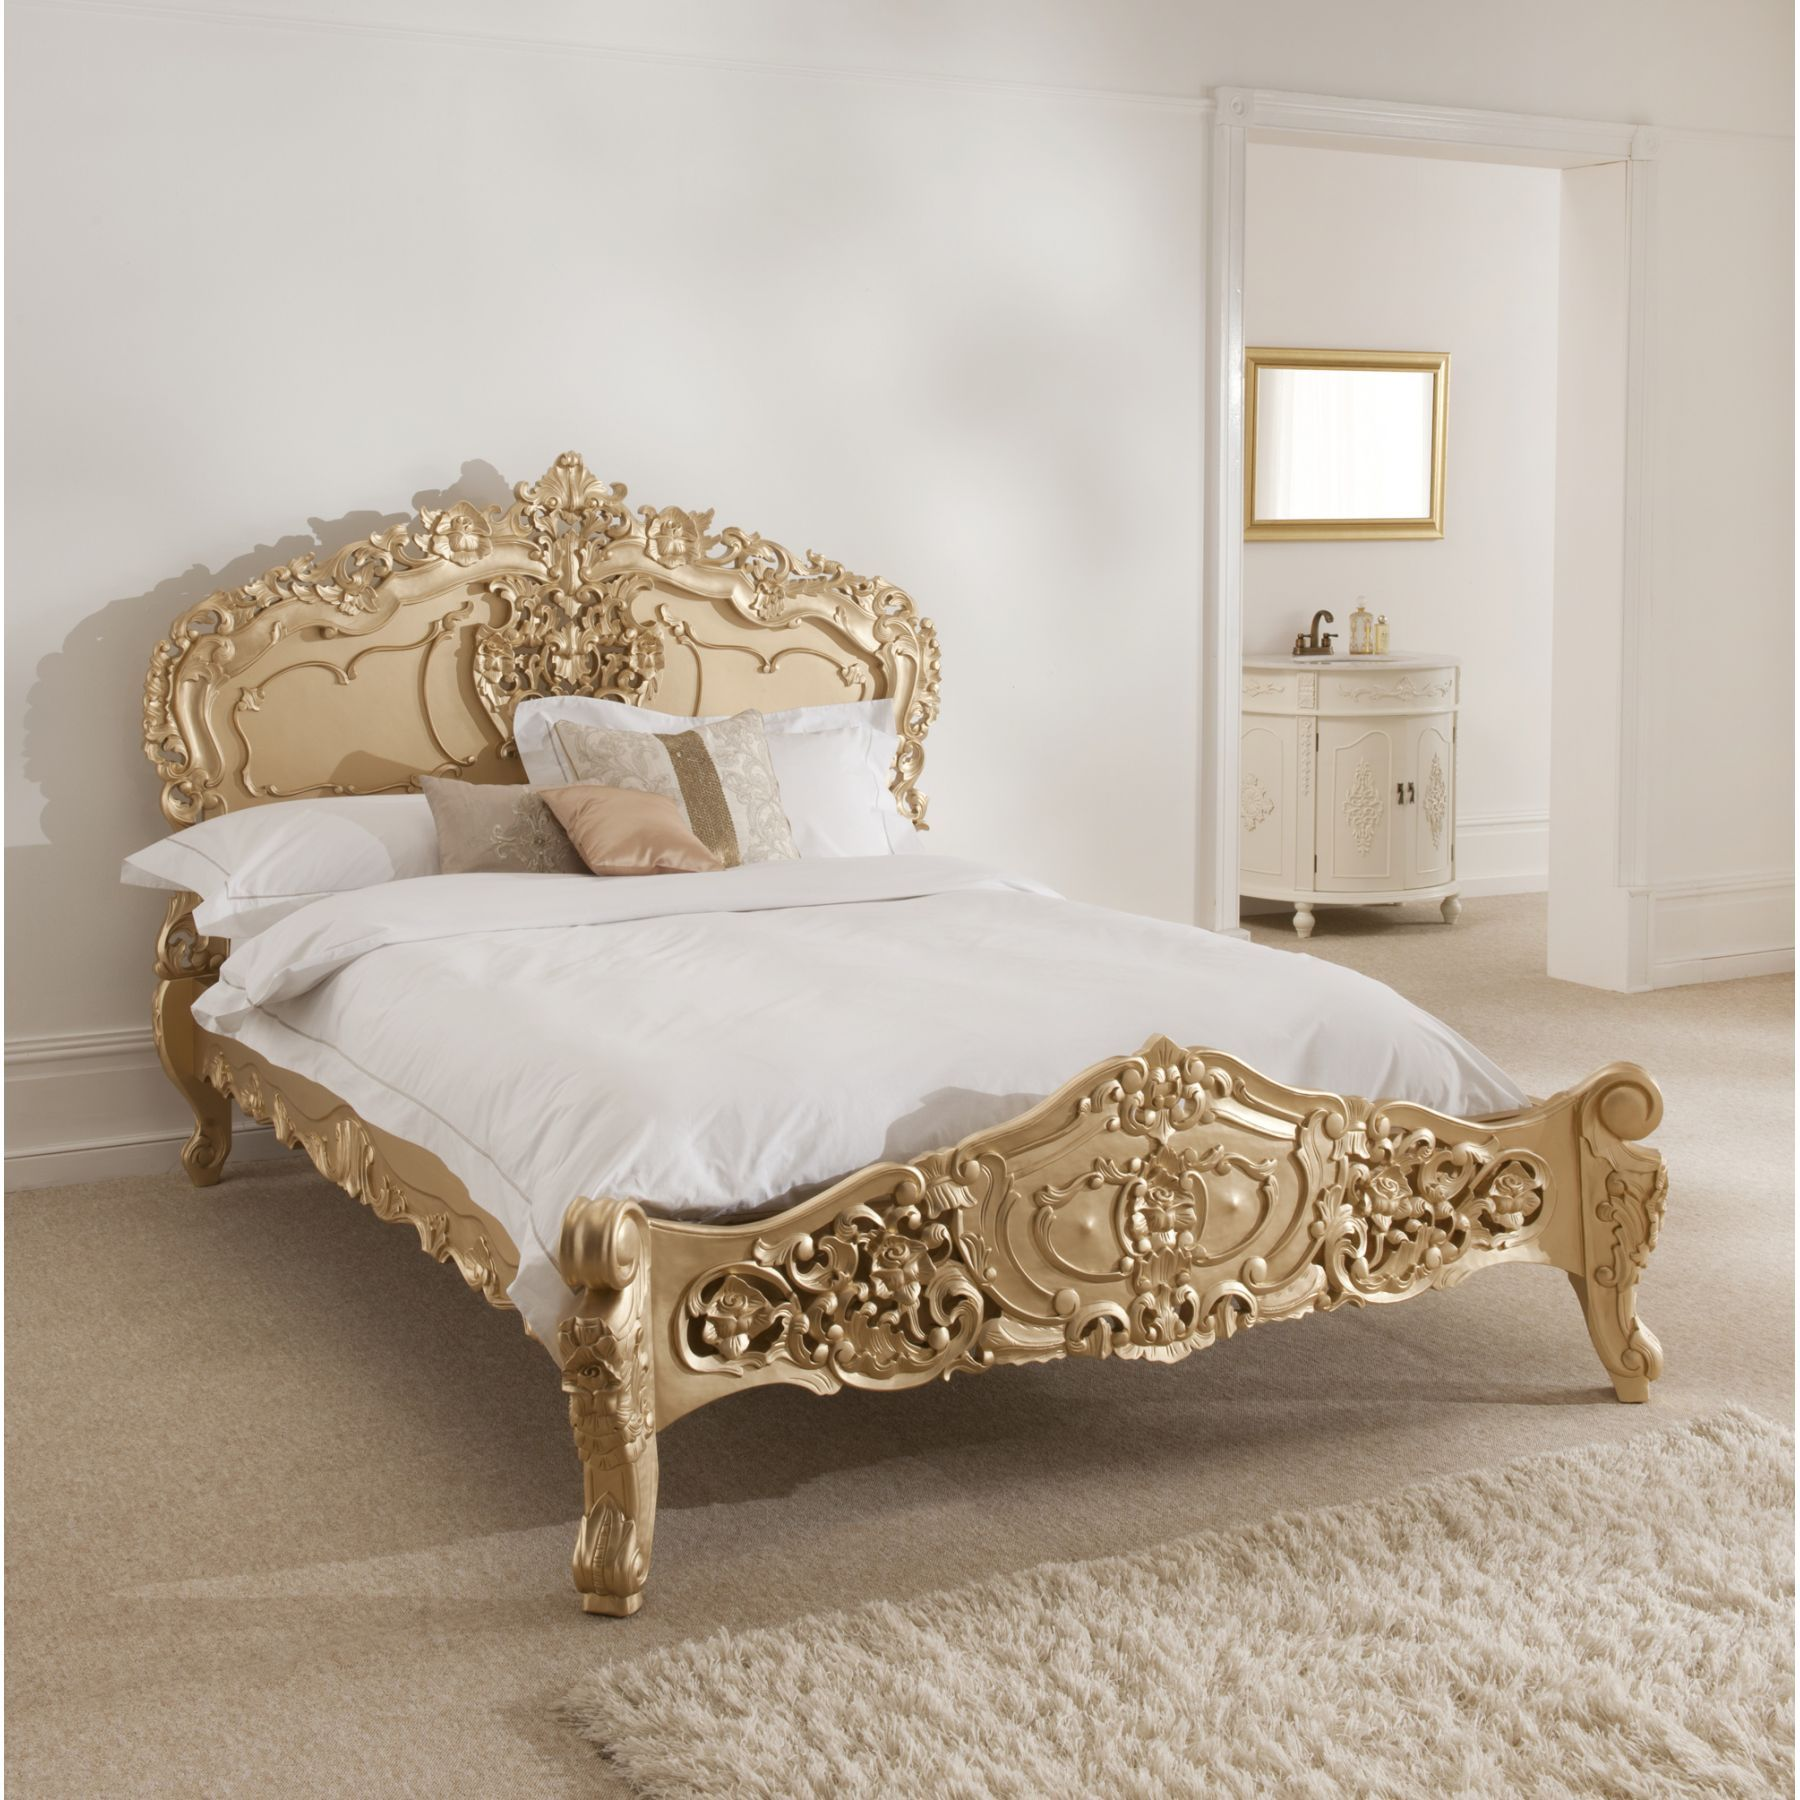 This Rococo style mahogany bed with an antique gold finish is